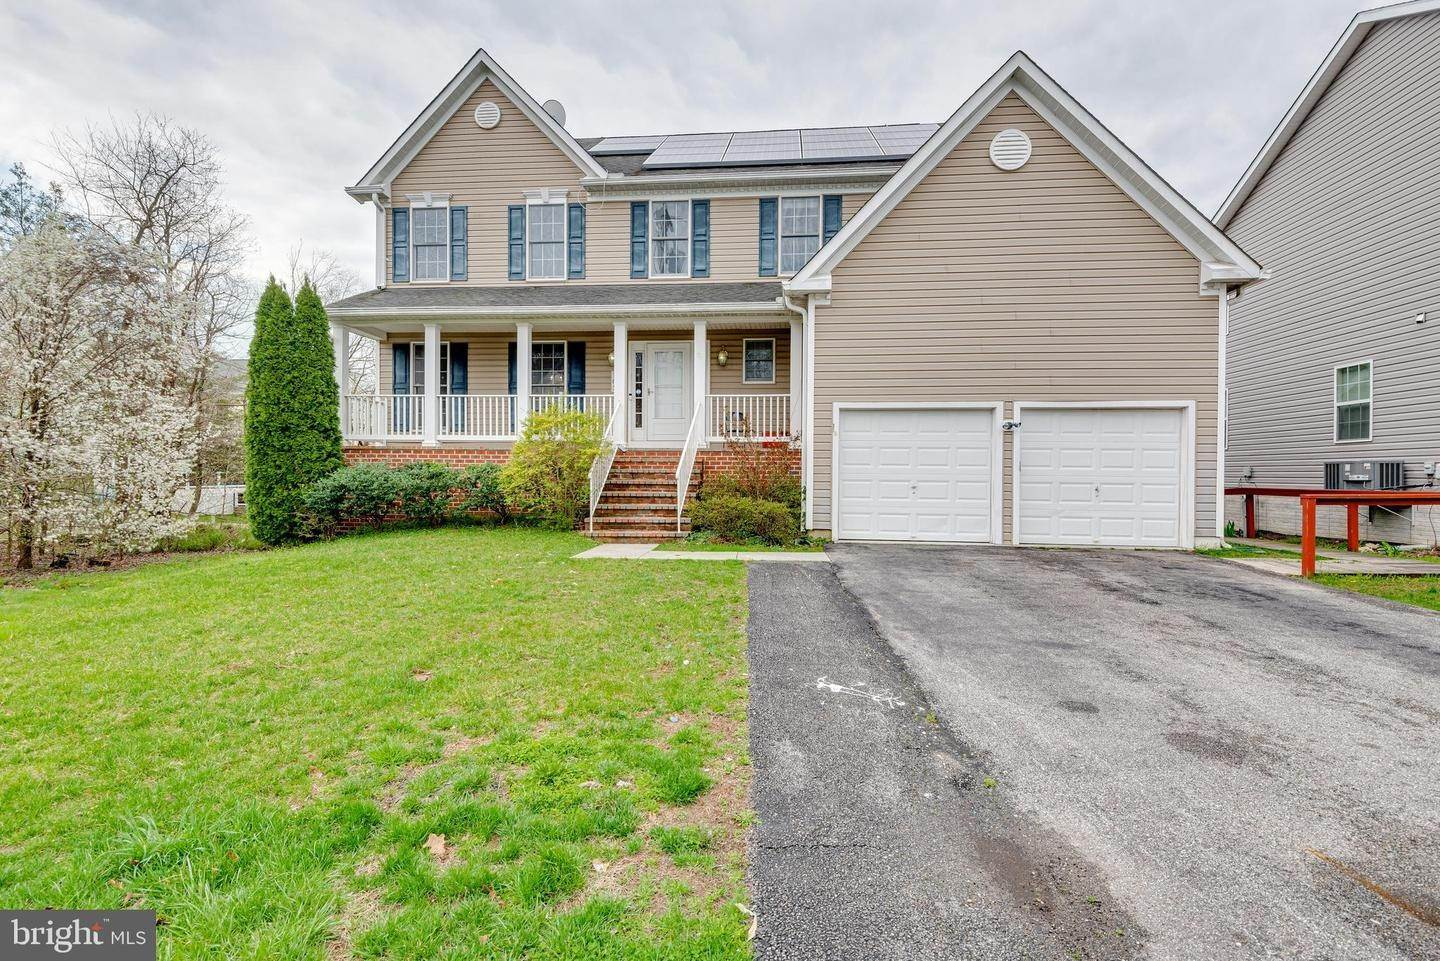 3. Single Family Homes alle Severna Park, Maryland, 21146 Stati Uniti